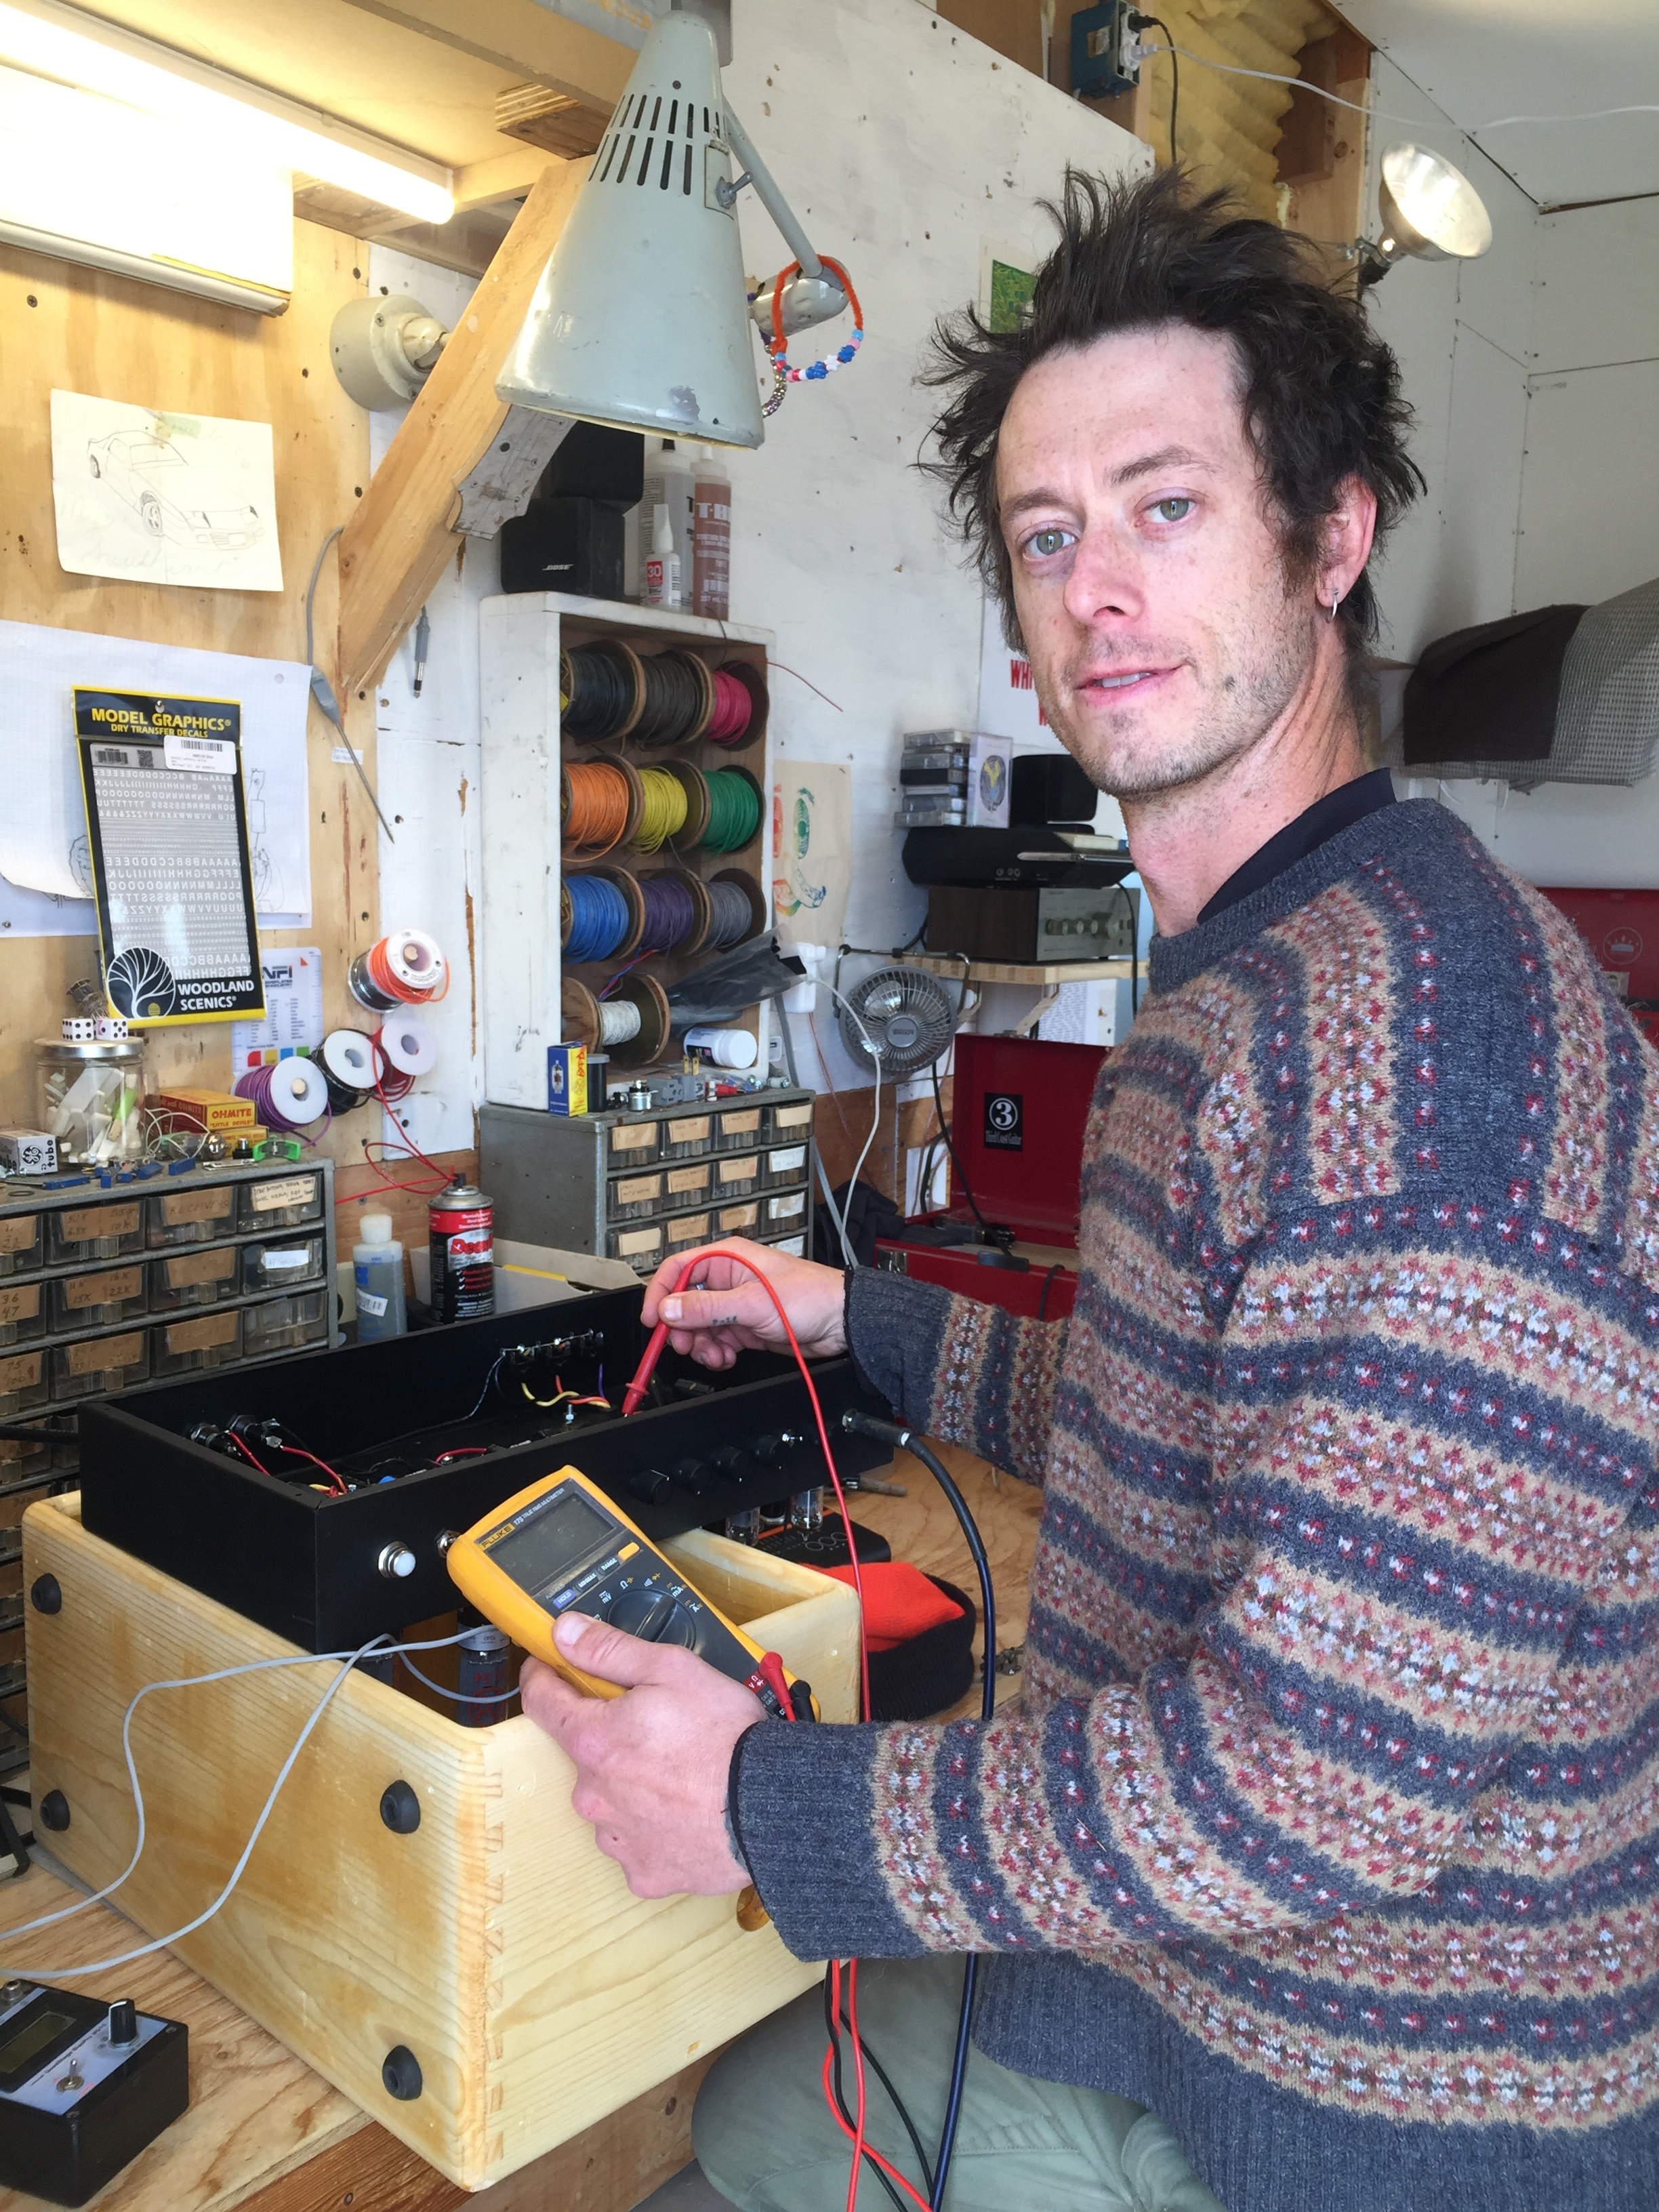 - High Desert Sonic Institute was founded by Jacob Erwin in the effort to spread his love of both electricity and music.